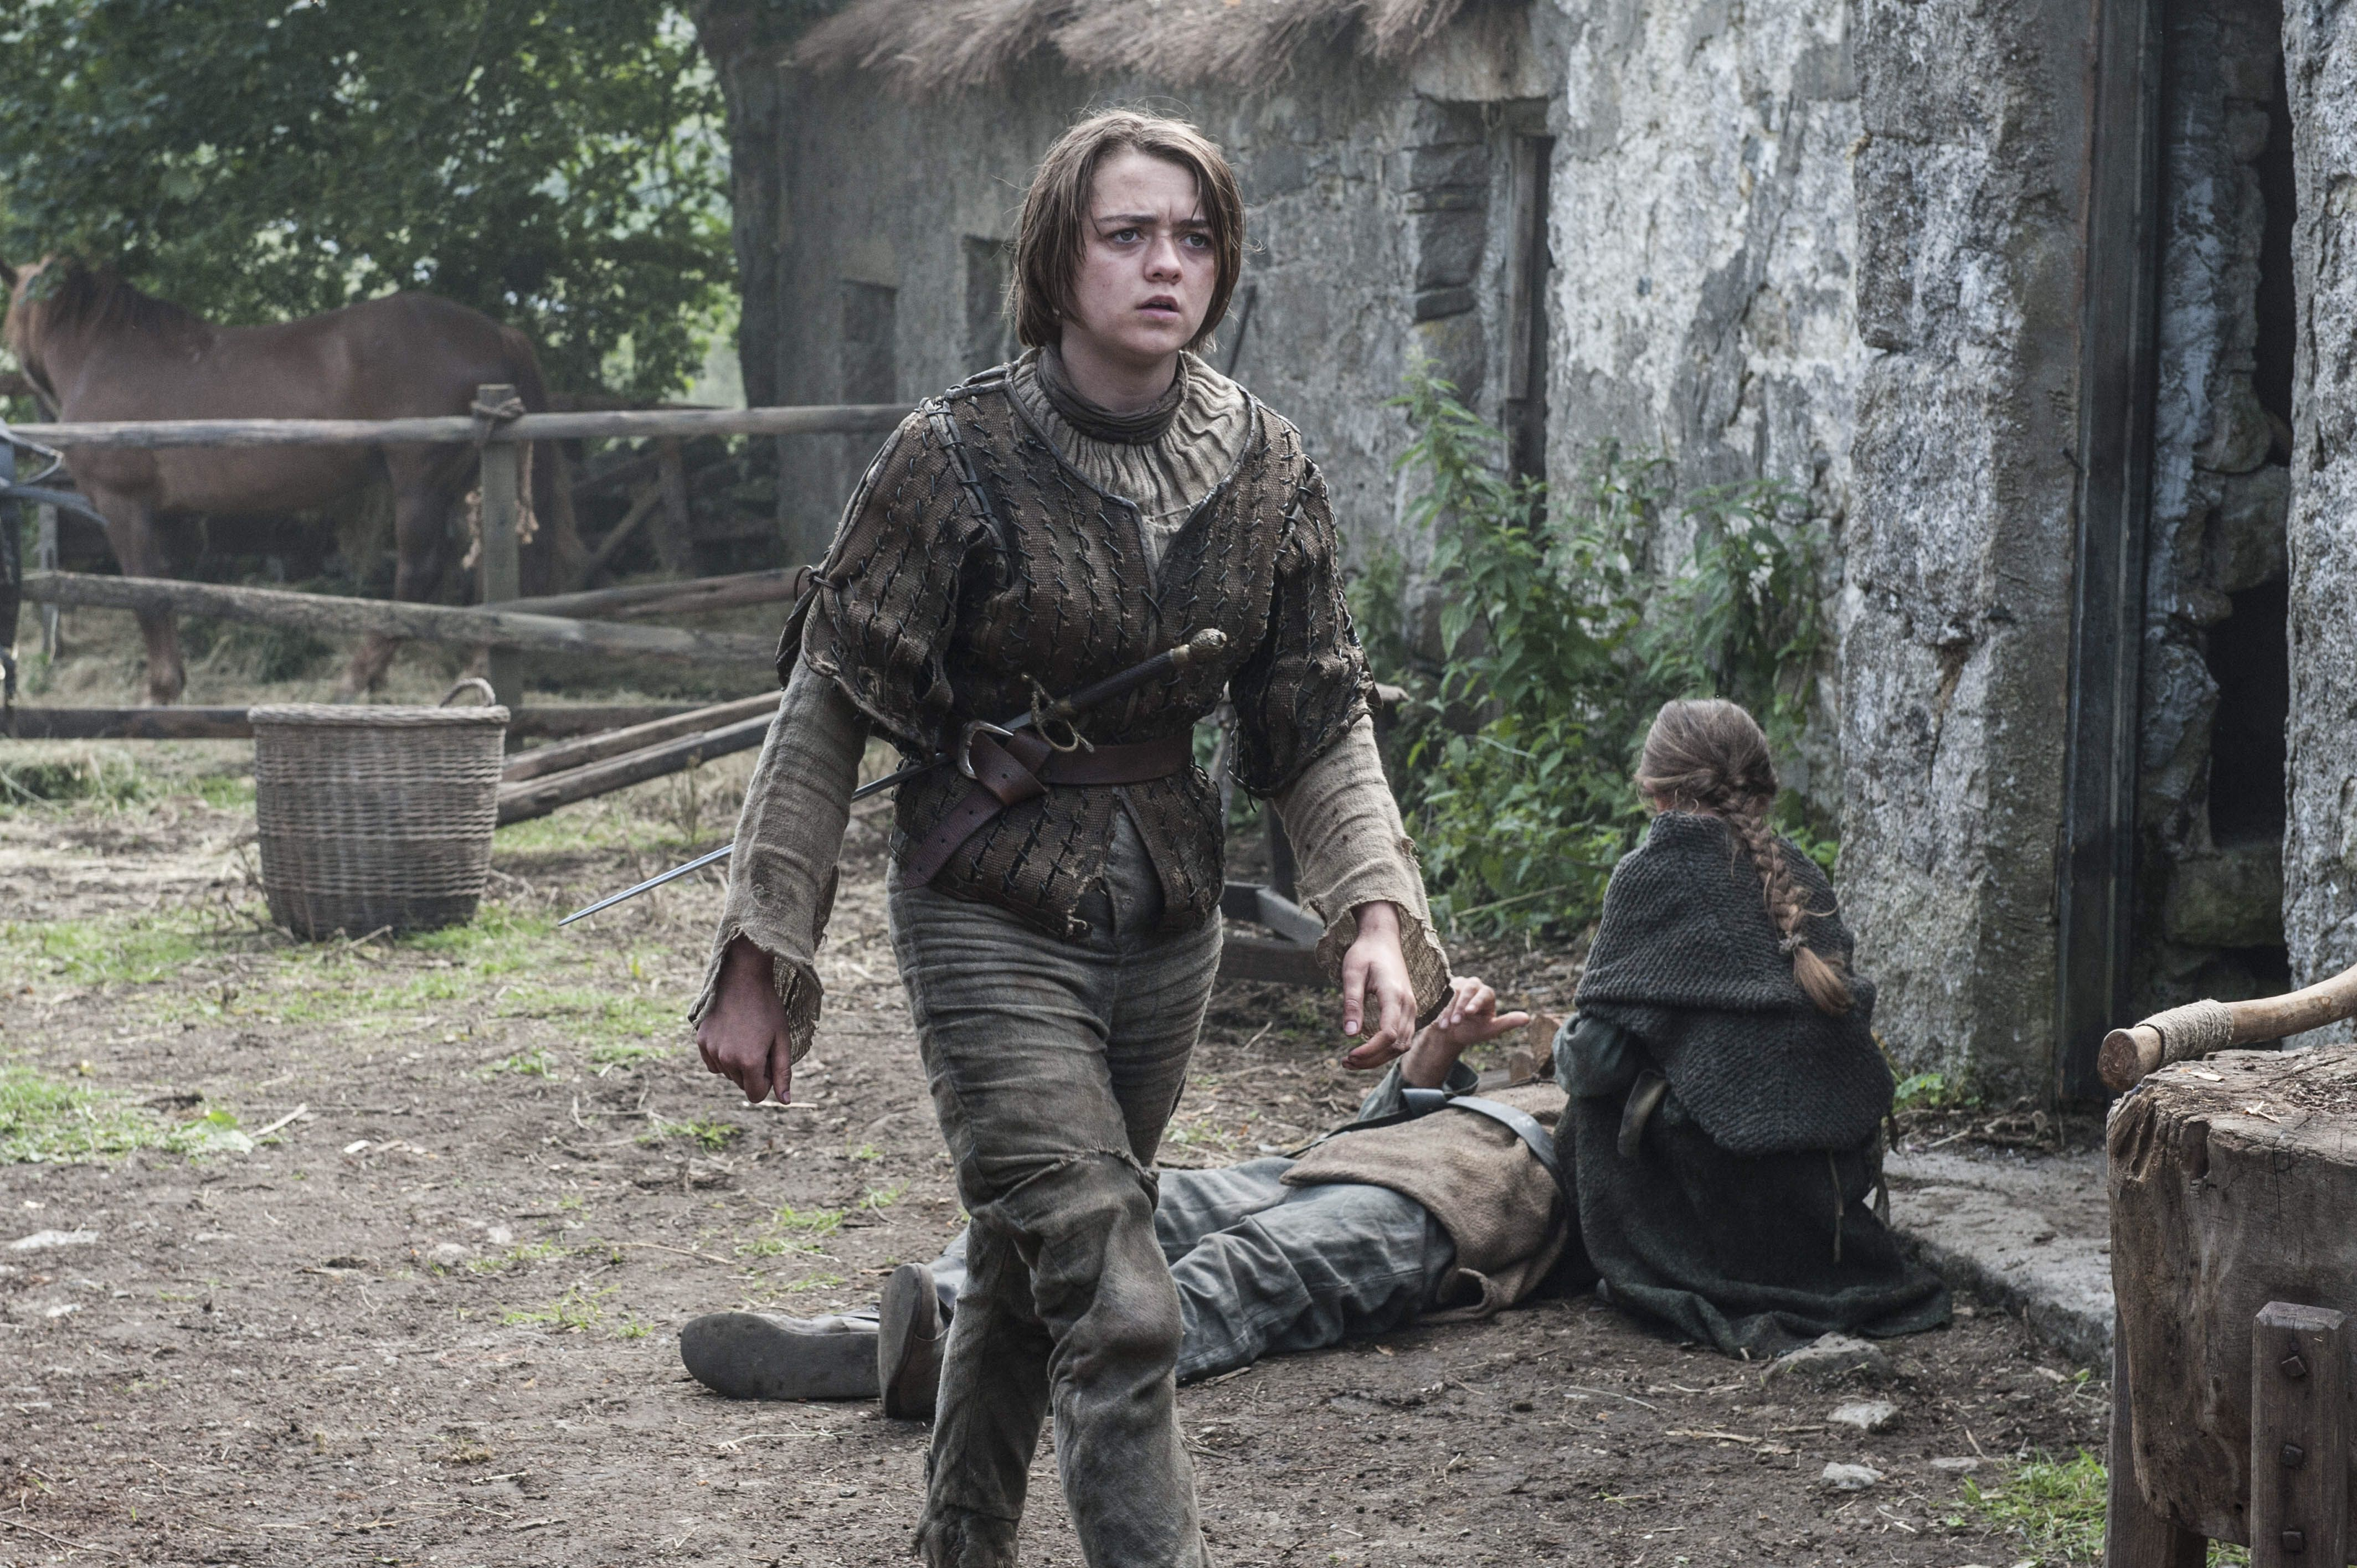 Arya going after The Hound - 'Breaker of Chains' (S4, E3)